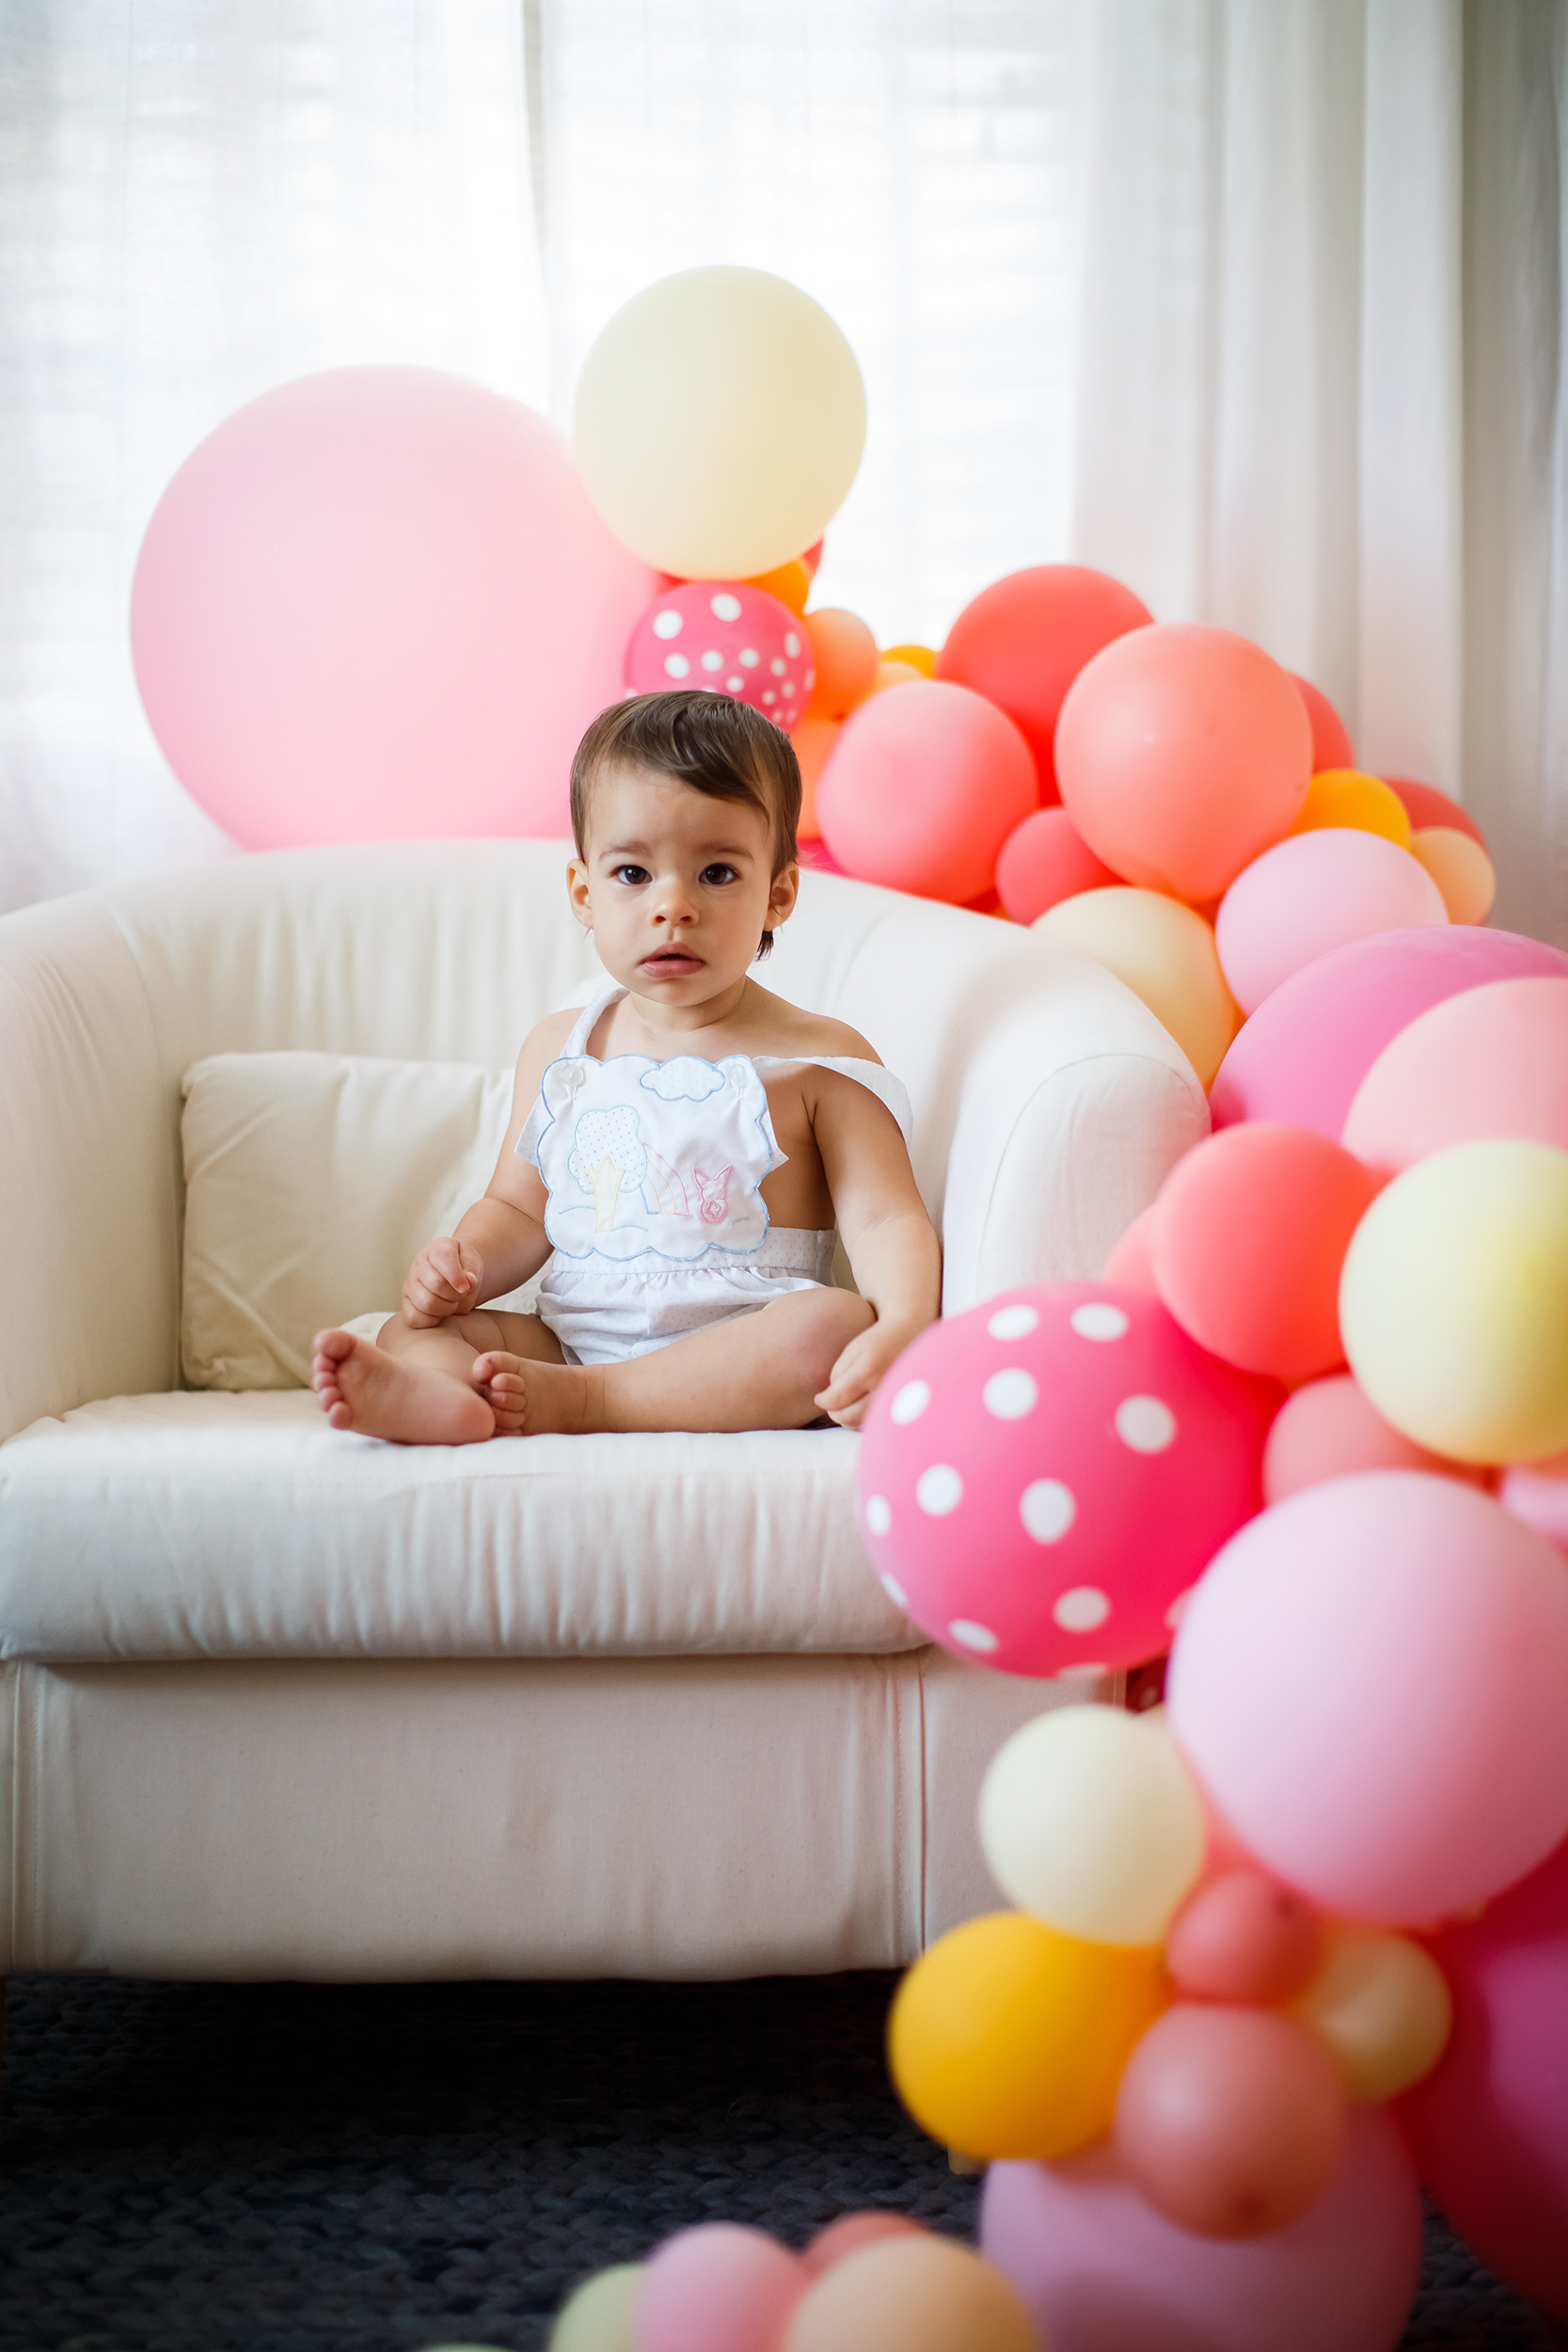 vroom_vroom_balloon_organic_balloon_garland_pink_first_birthday2.jpeg